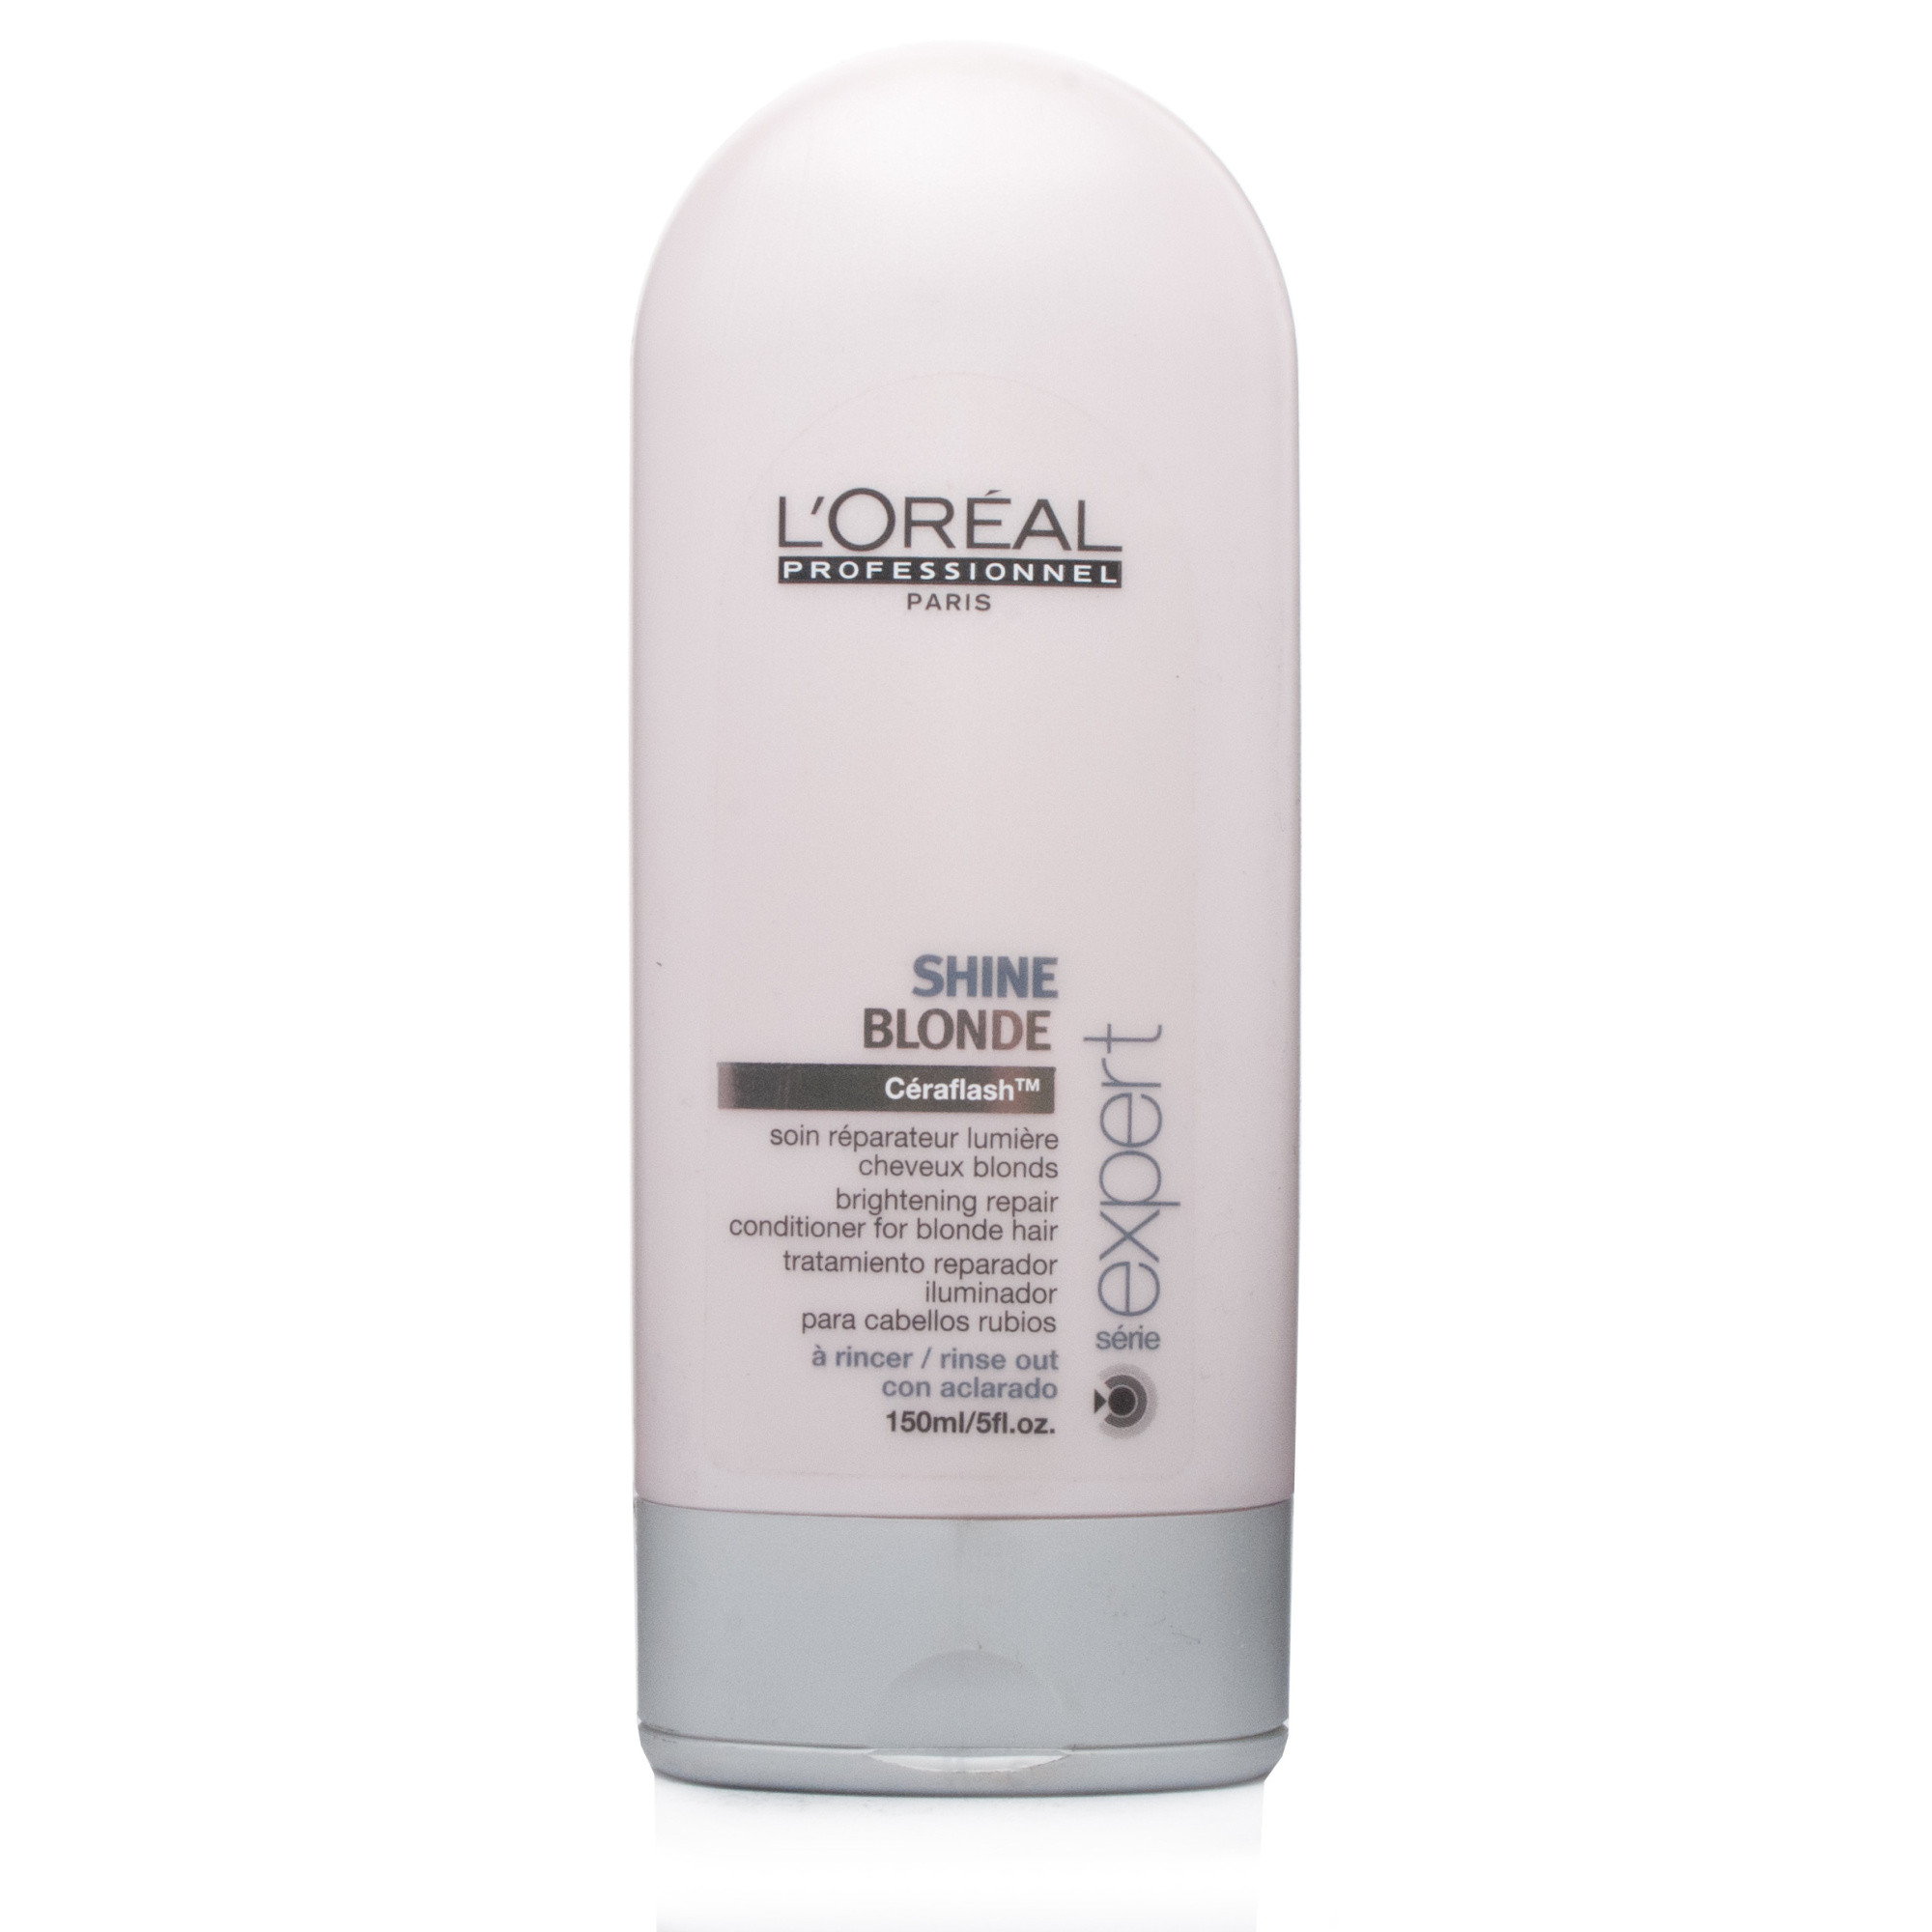 L'Oreal Professionnel Series Expert Shine Blonde Conditioner